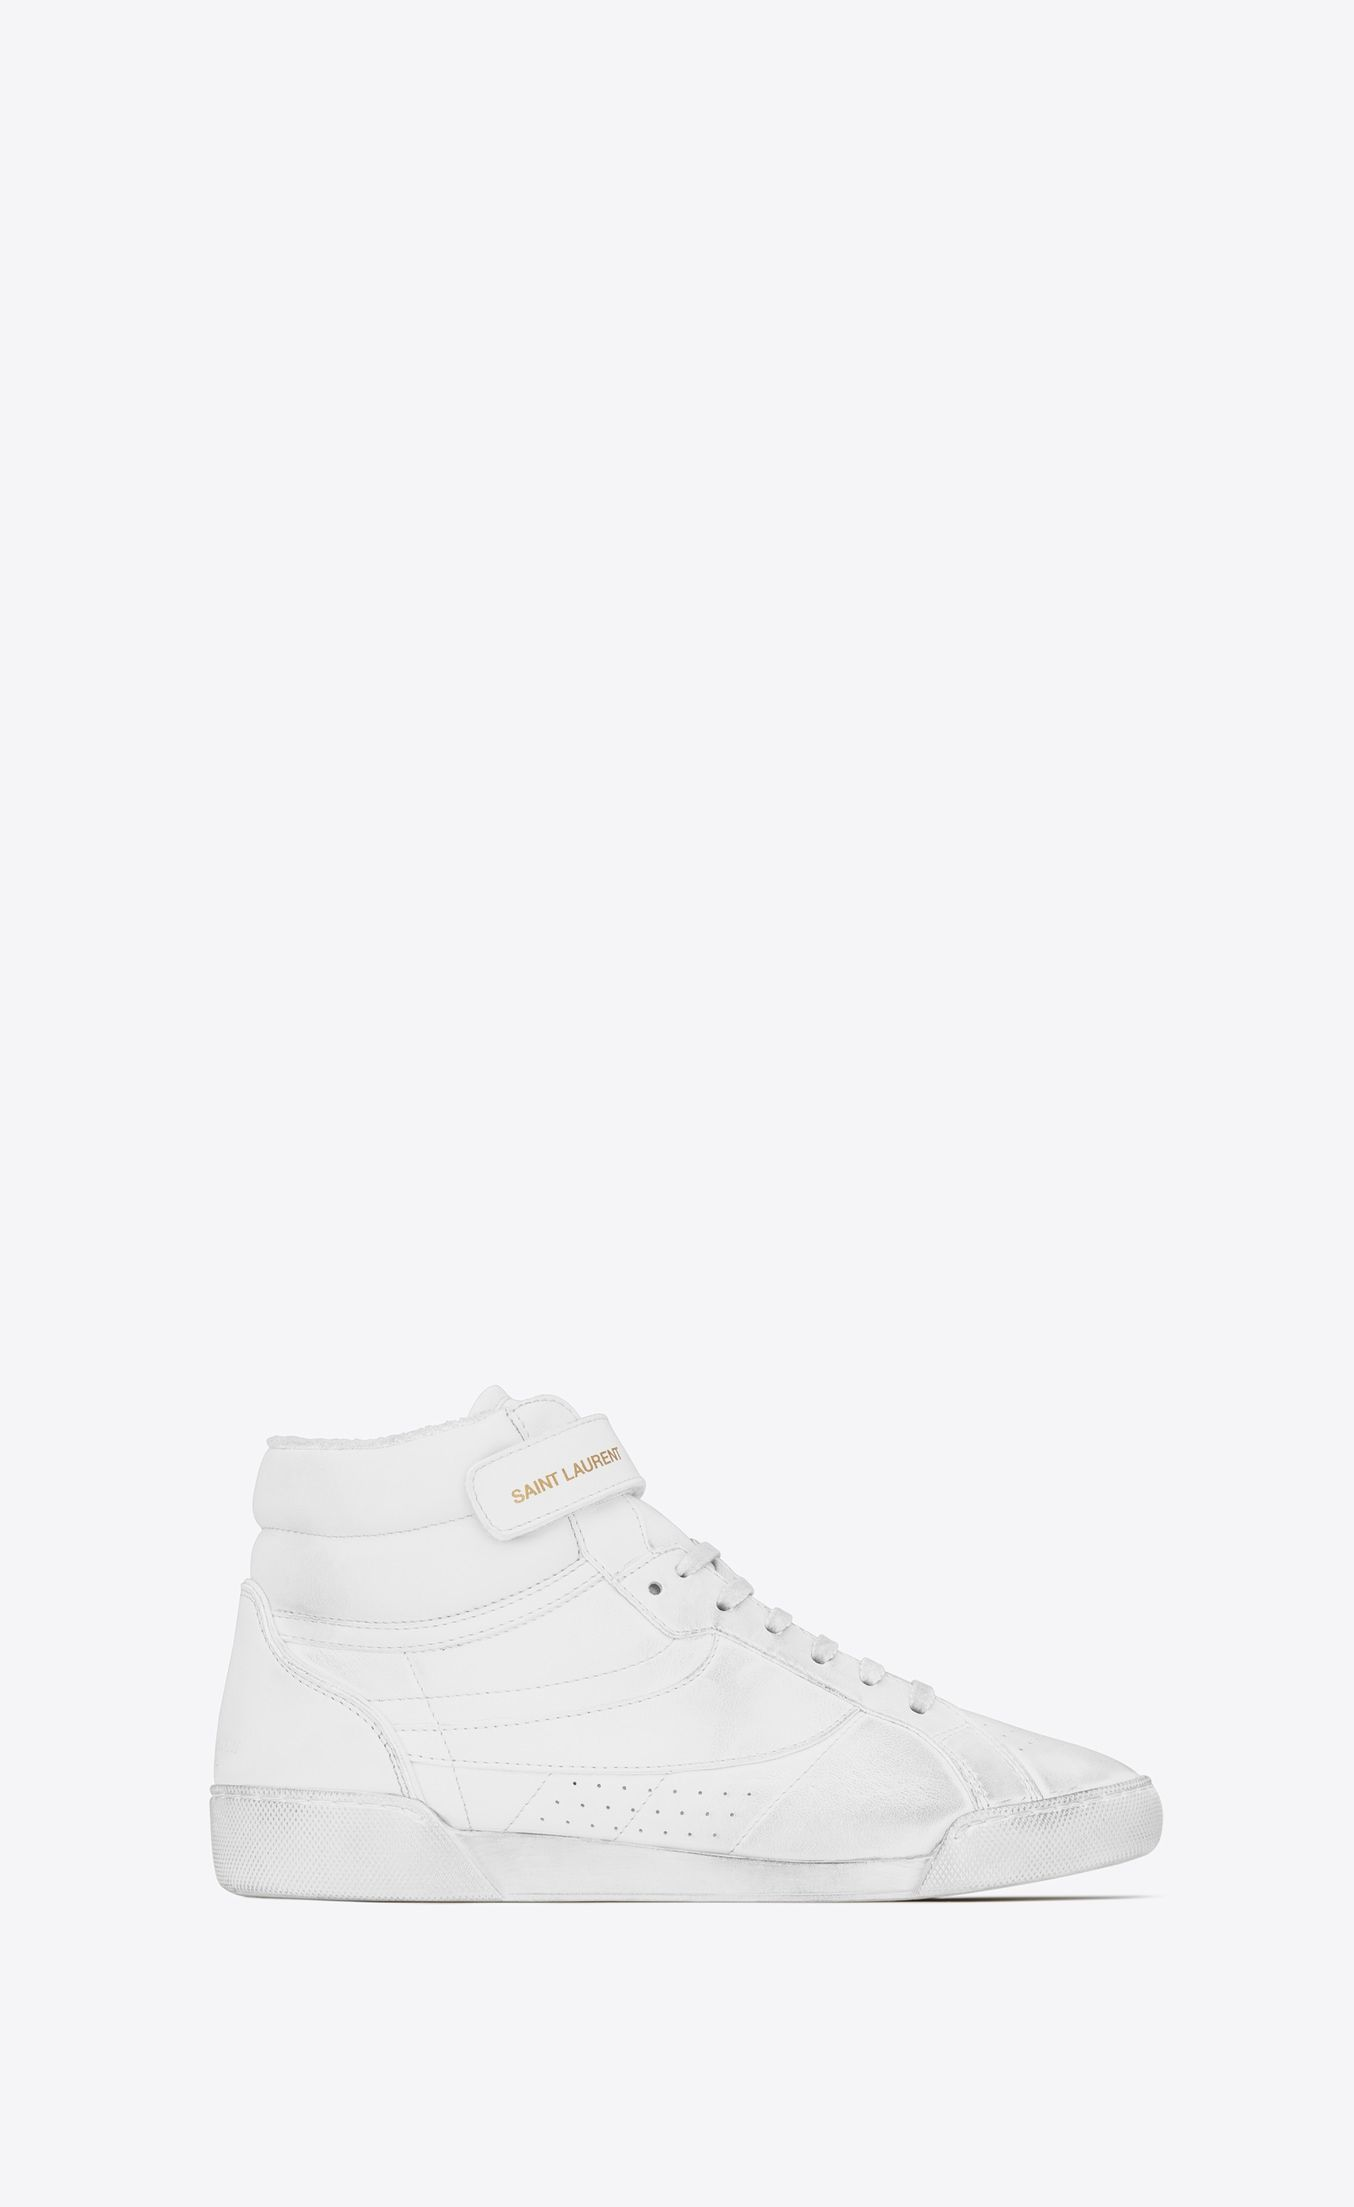 4c84c0b2598 LENNY sneakers in leather in 2019 | Dress | Sneakers, Shoes, Leather